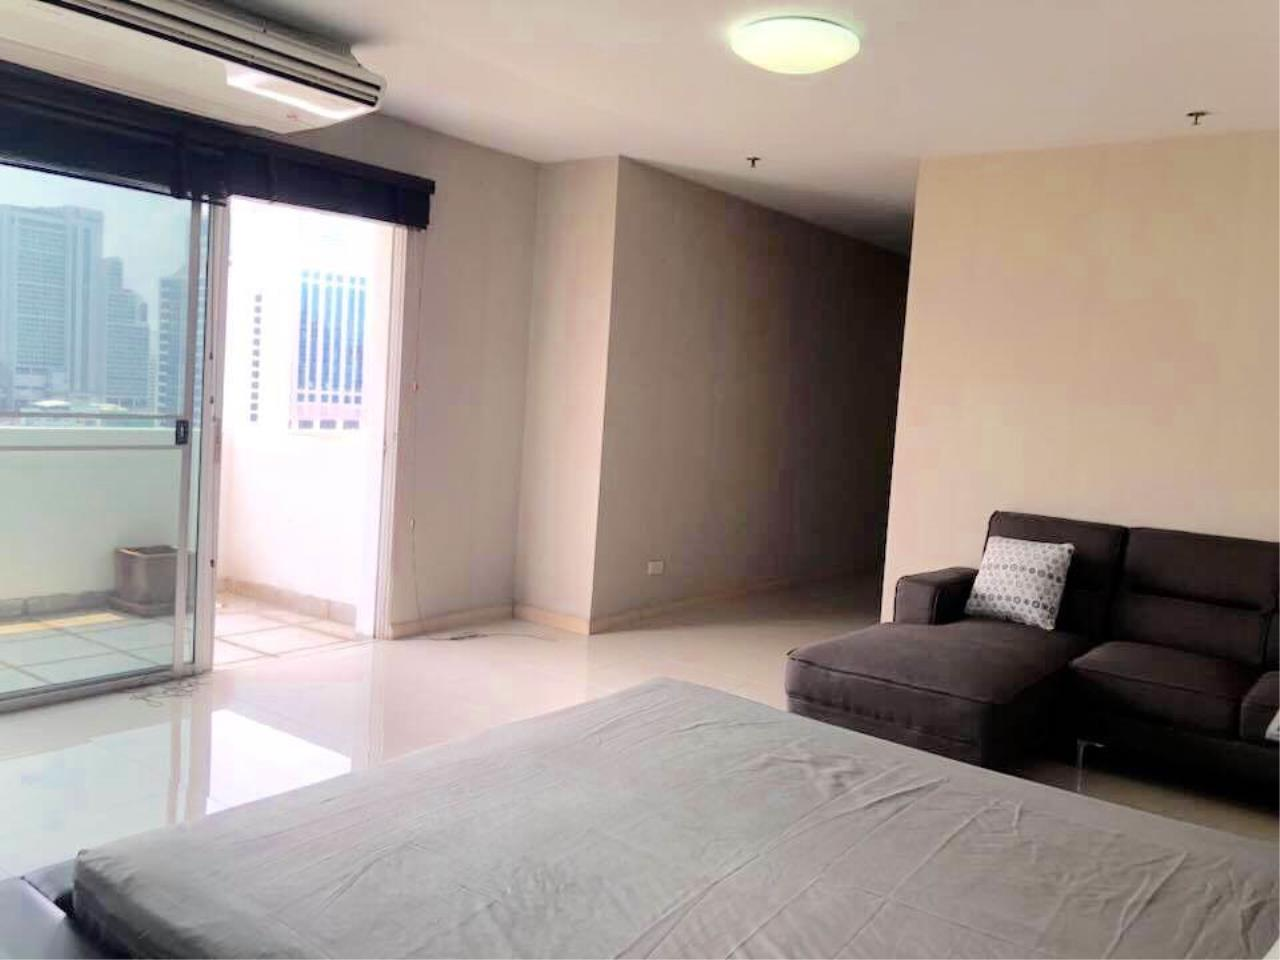 RE/MAX All Star Realty Agency's 33 Tower condo for rent (BTS Phrom Phong) 2